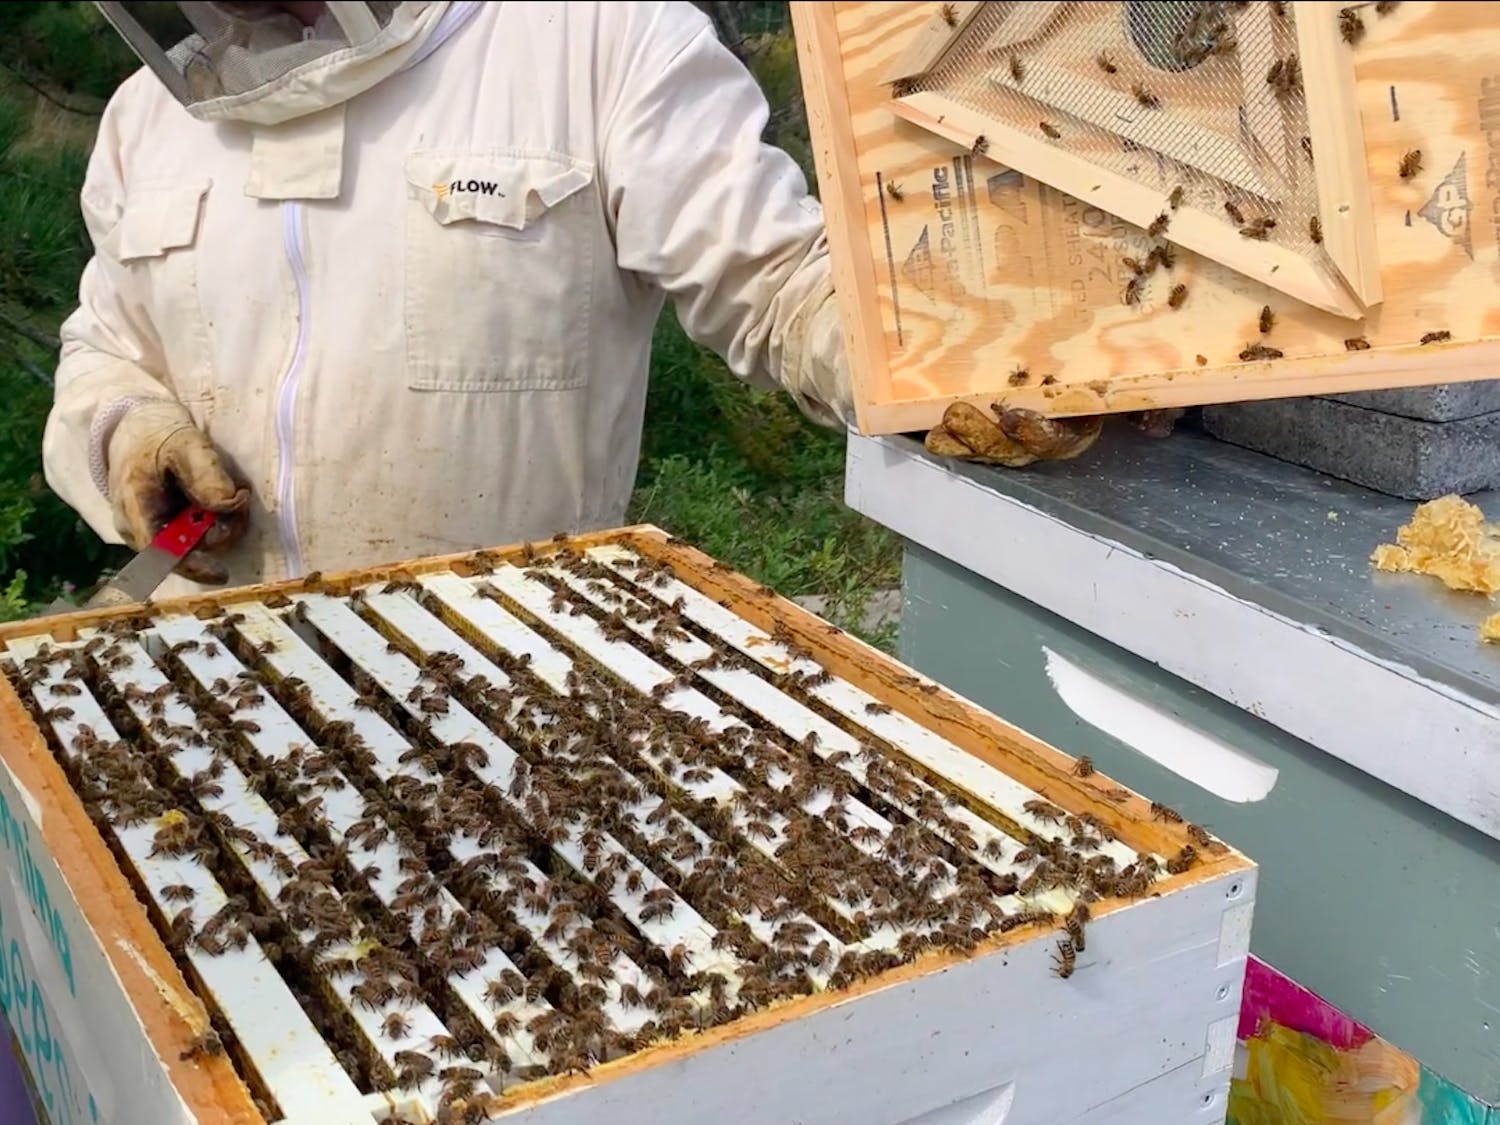 UB Bees director David Hoekstra says putting resources toward sustainable practices like beekeeping is well worth the investment.